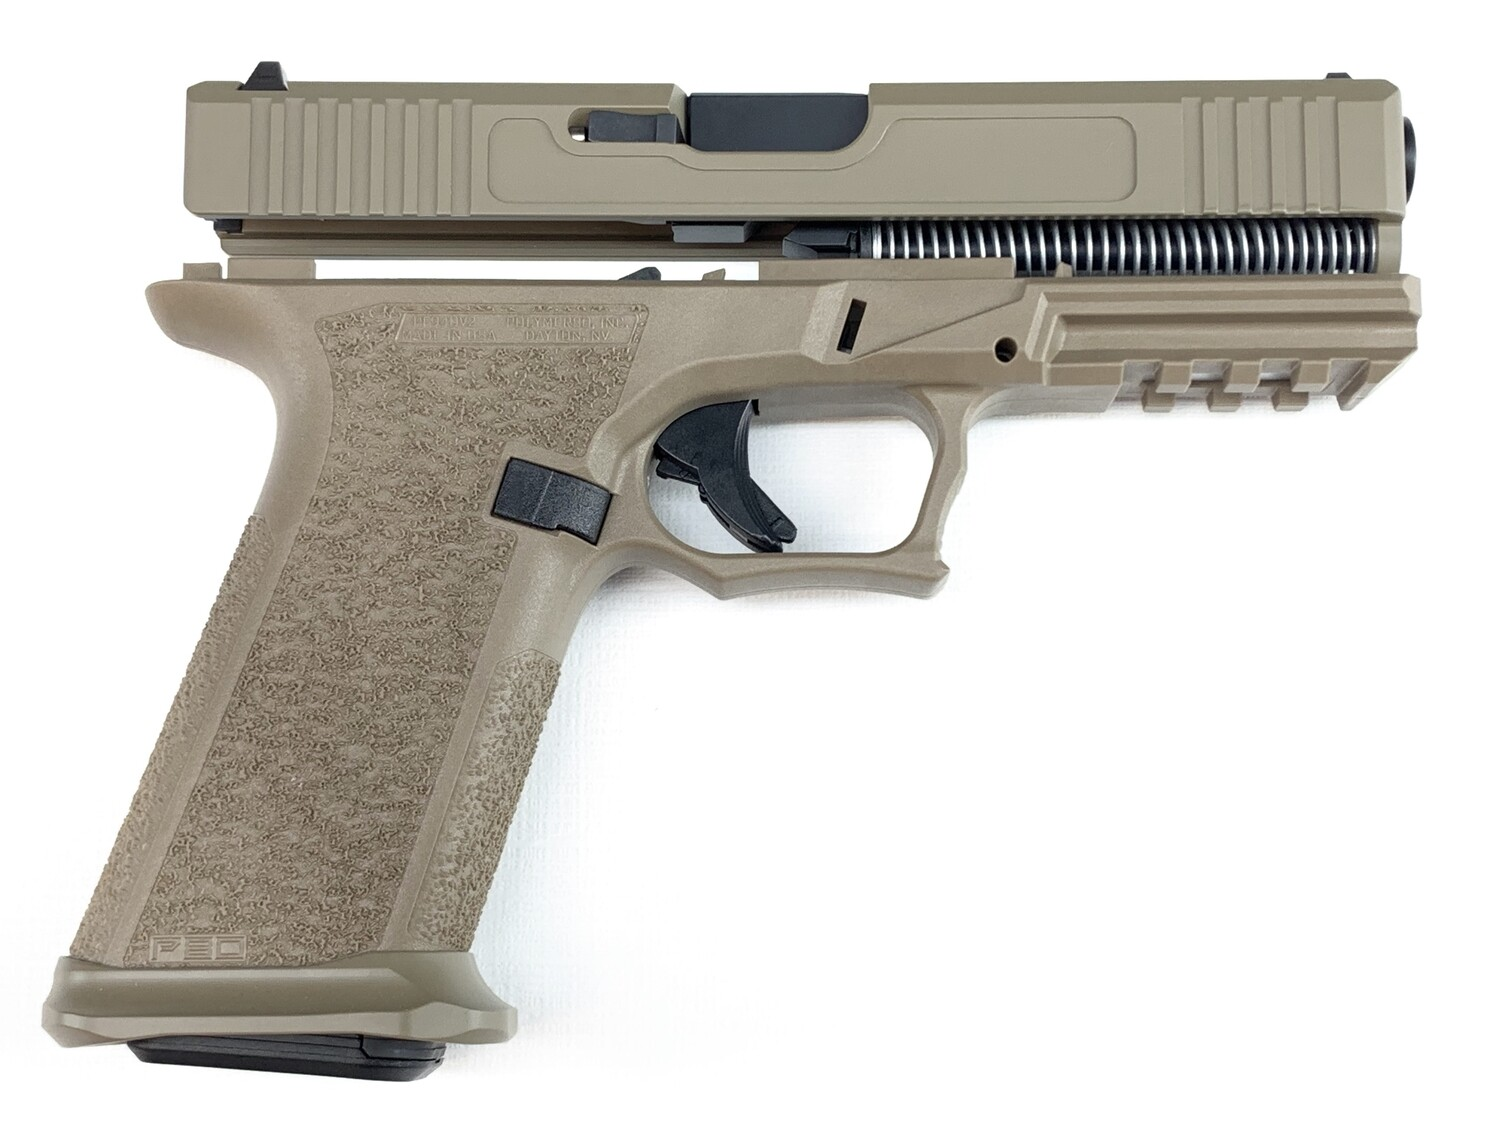 Patriot G19 80% Pistol Build Kit 9mm - Polymer80 PF940C - FDE - Steel City Arsenal Magwell FDE